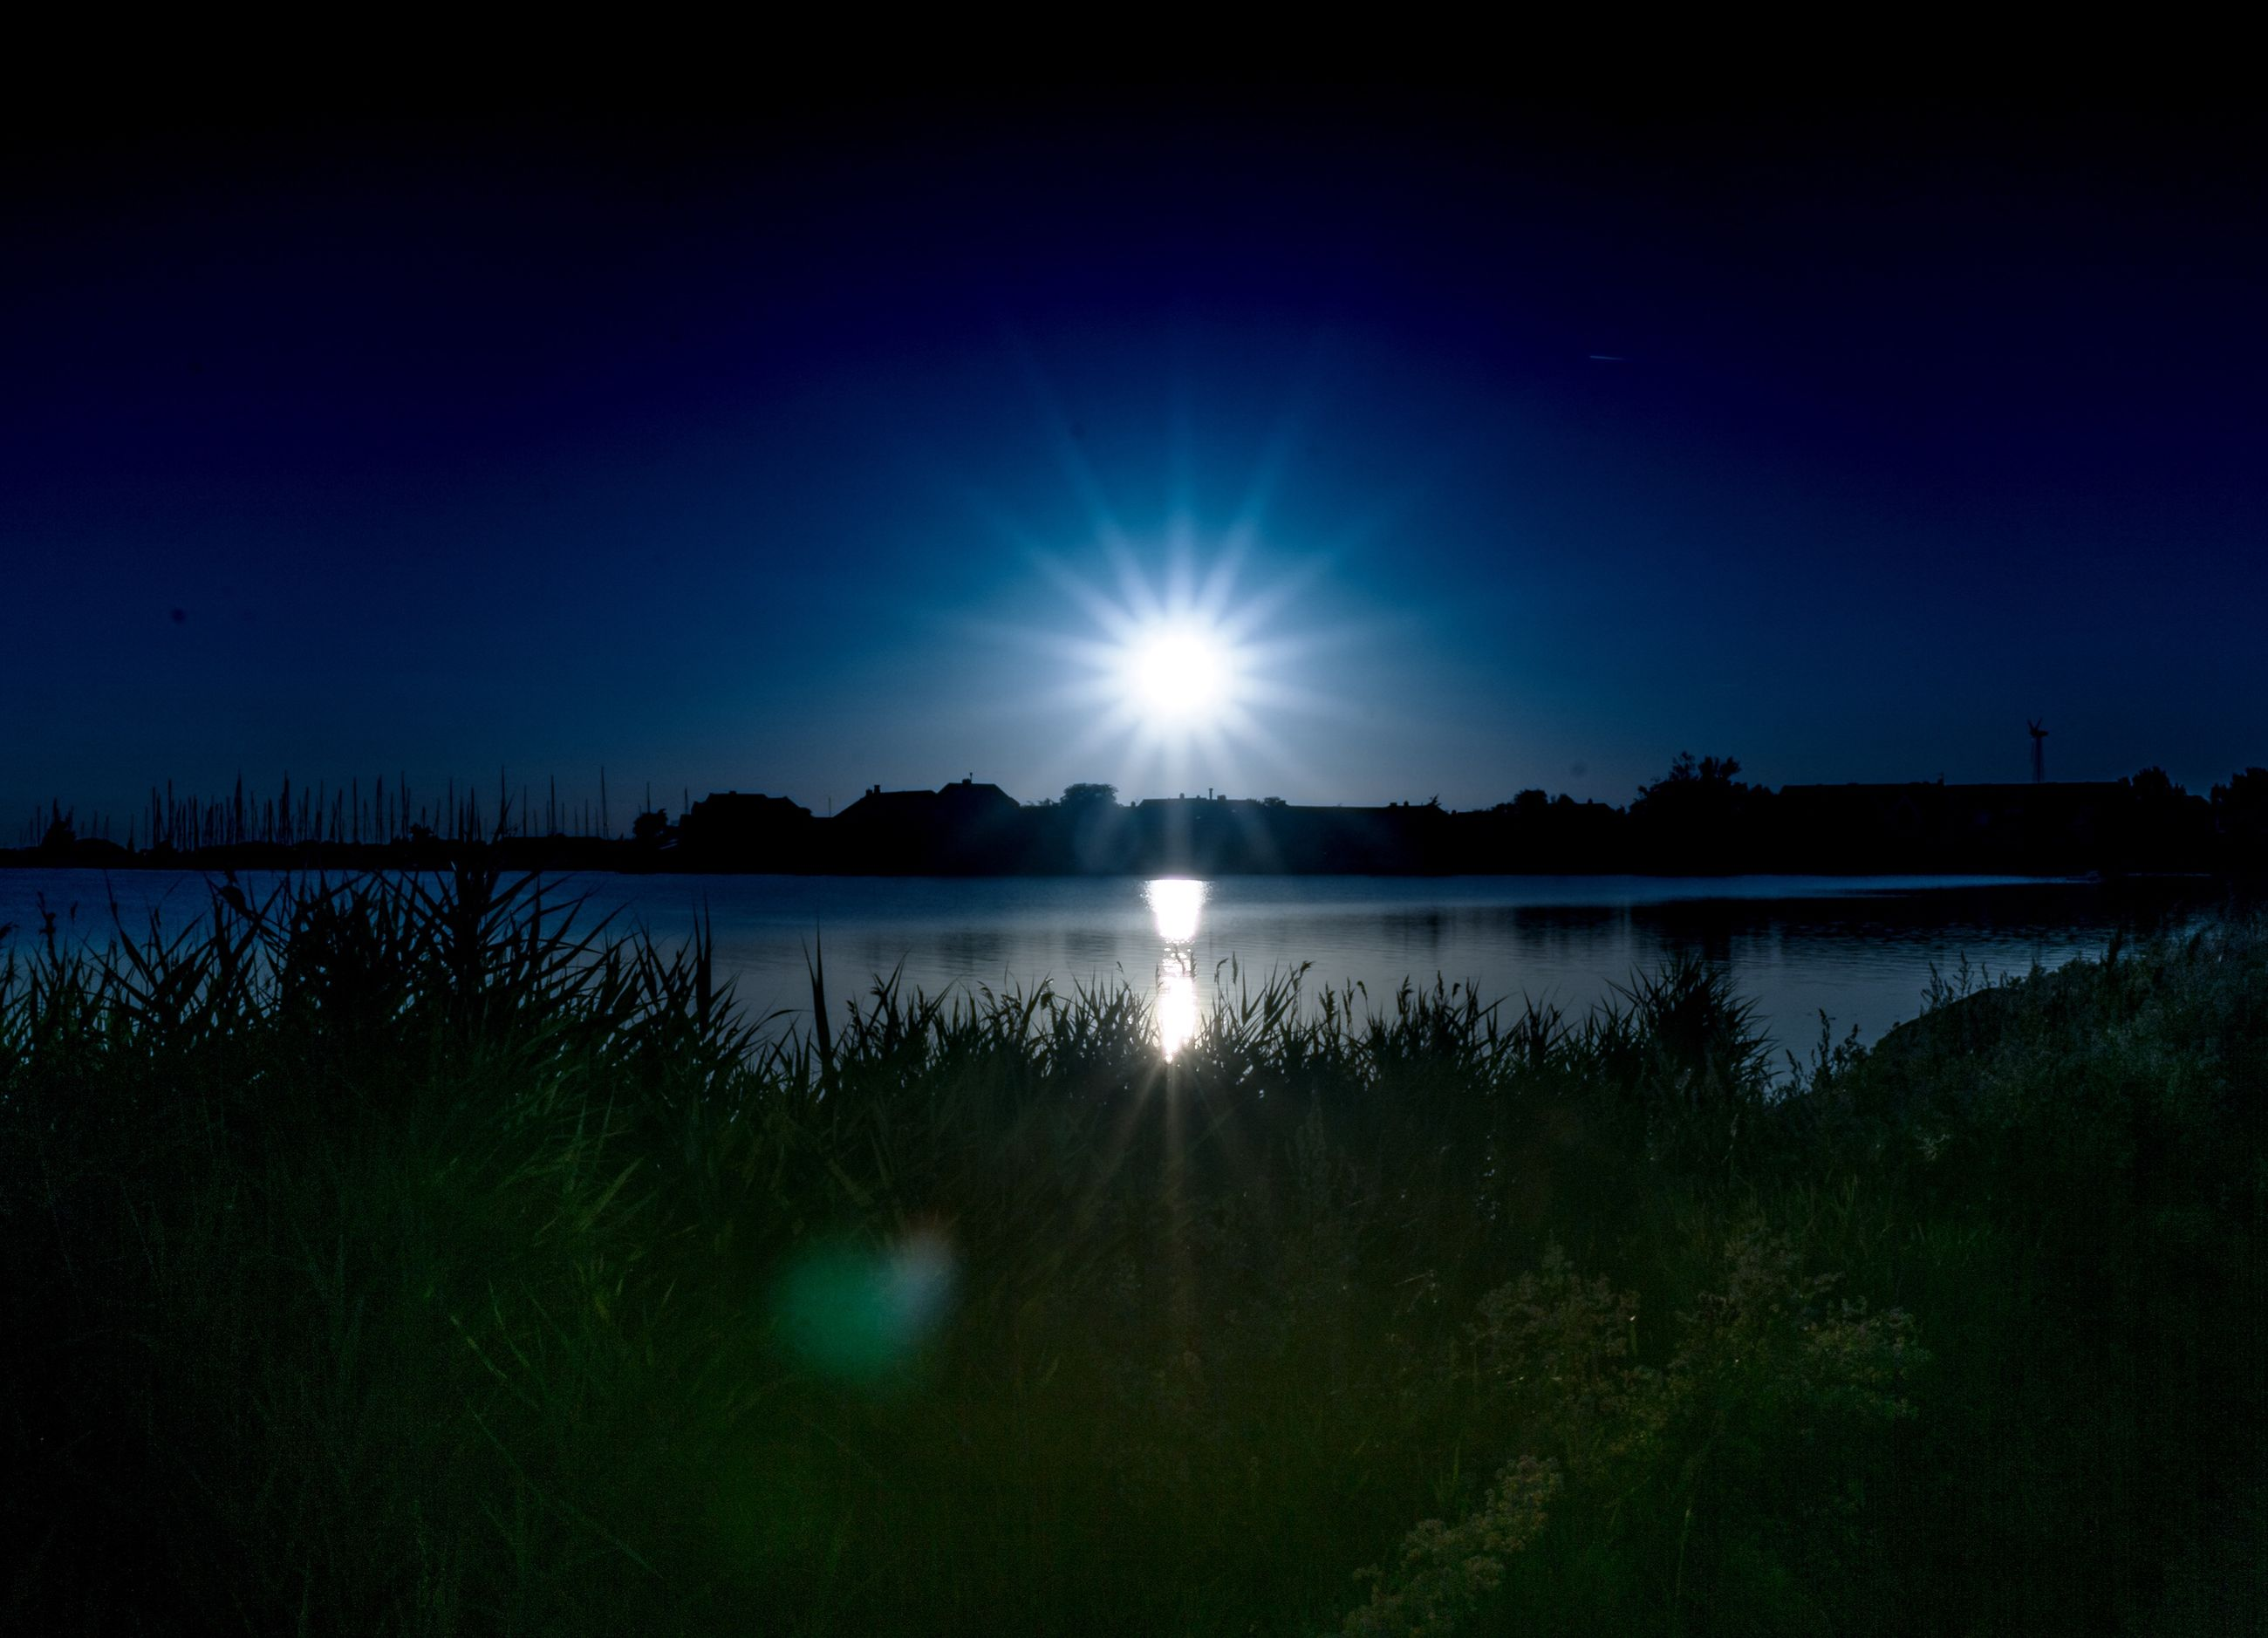 sky, water, scenics - nature, tranquility, beauty in nature, tranquil scene, plant, lake, tree, reflection, nature, no people, lens flare, sun, blue, non-urban scene, idyllic, sunlight, silhouette, outdoors, moonlight